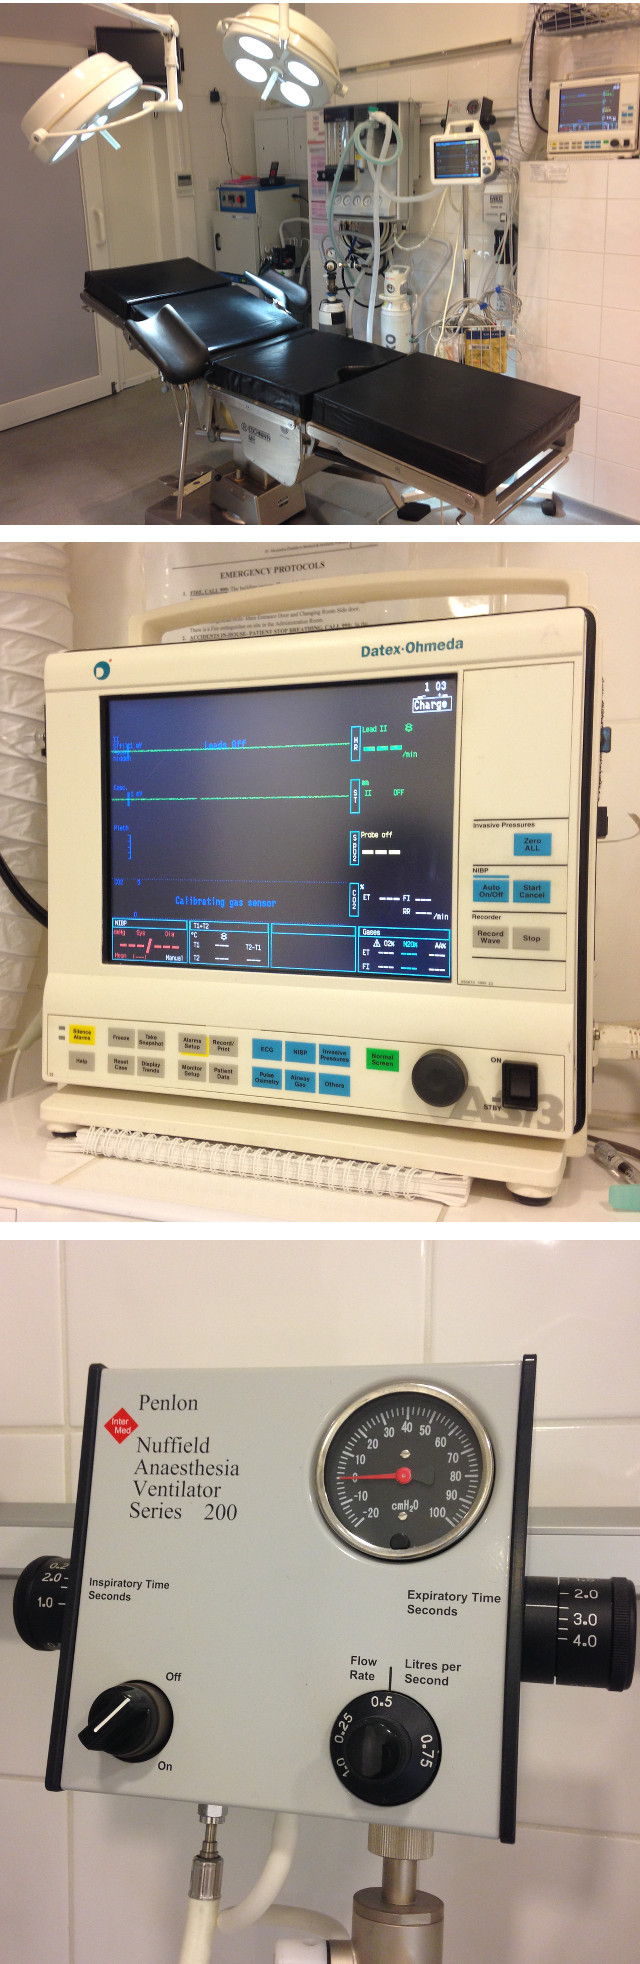 Operating Theatre Equipment